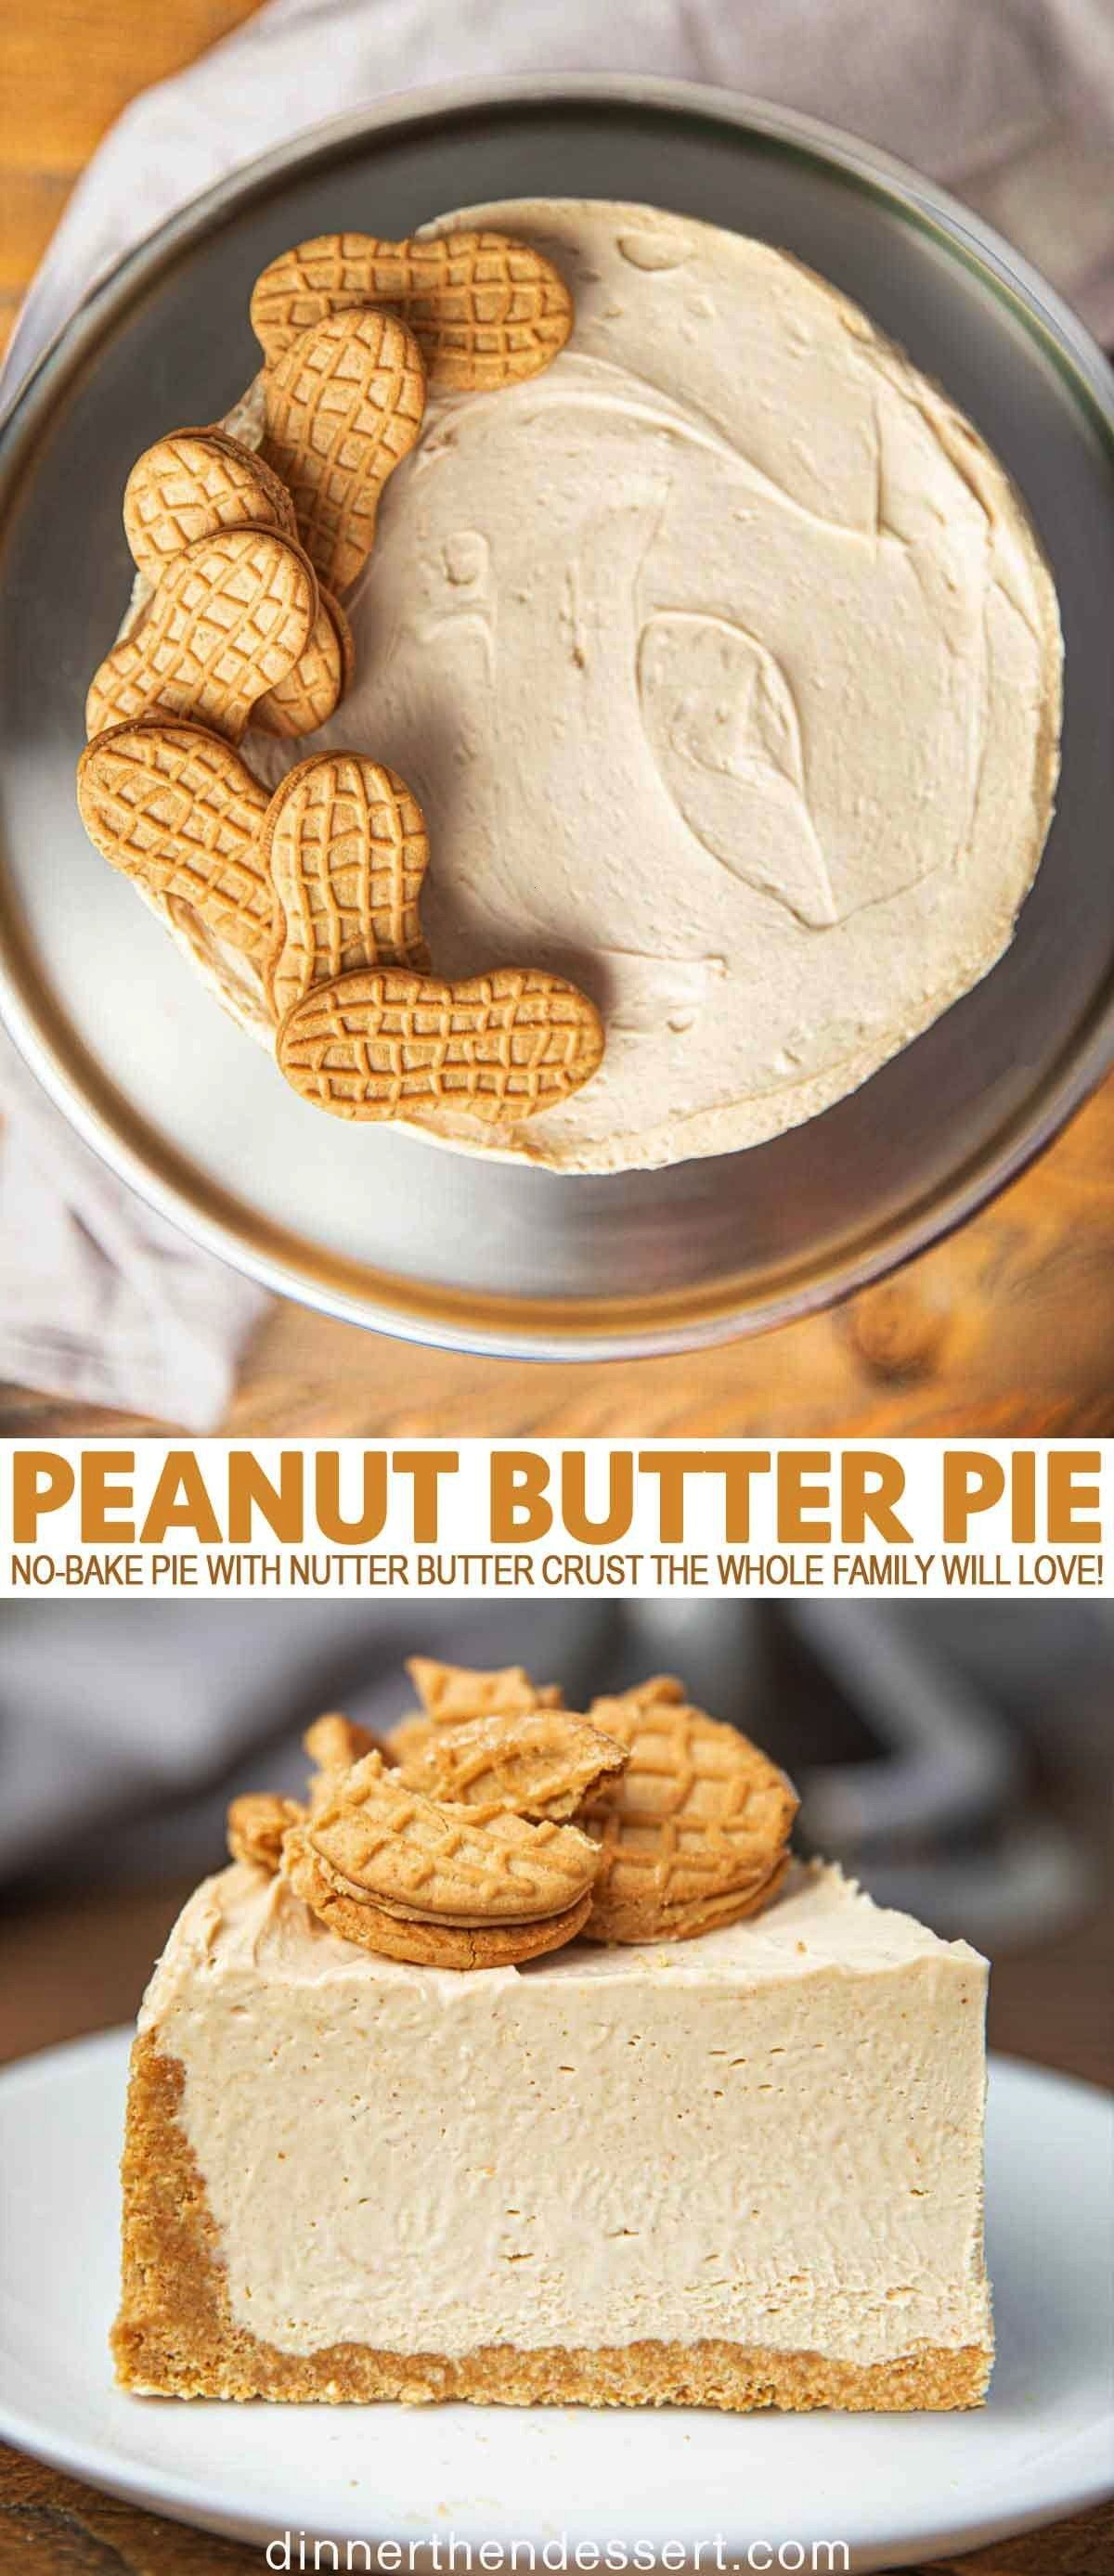 Butter Pie is an easy no-bake pie with nutter butter crust and fluffy whipped peanut butter and cre